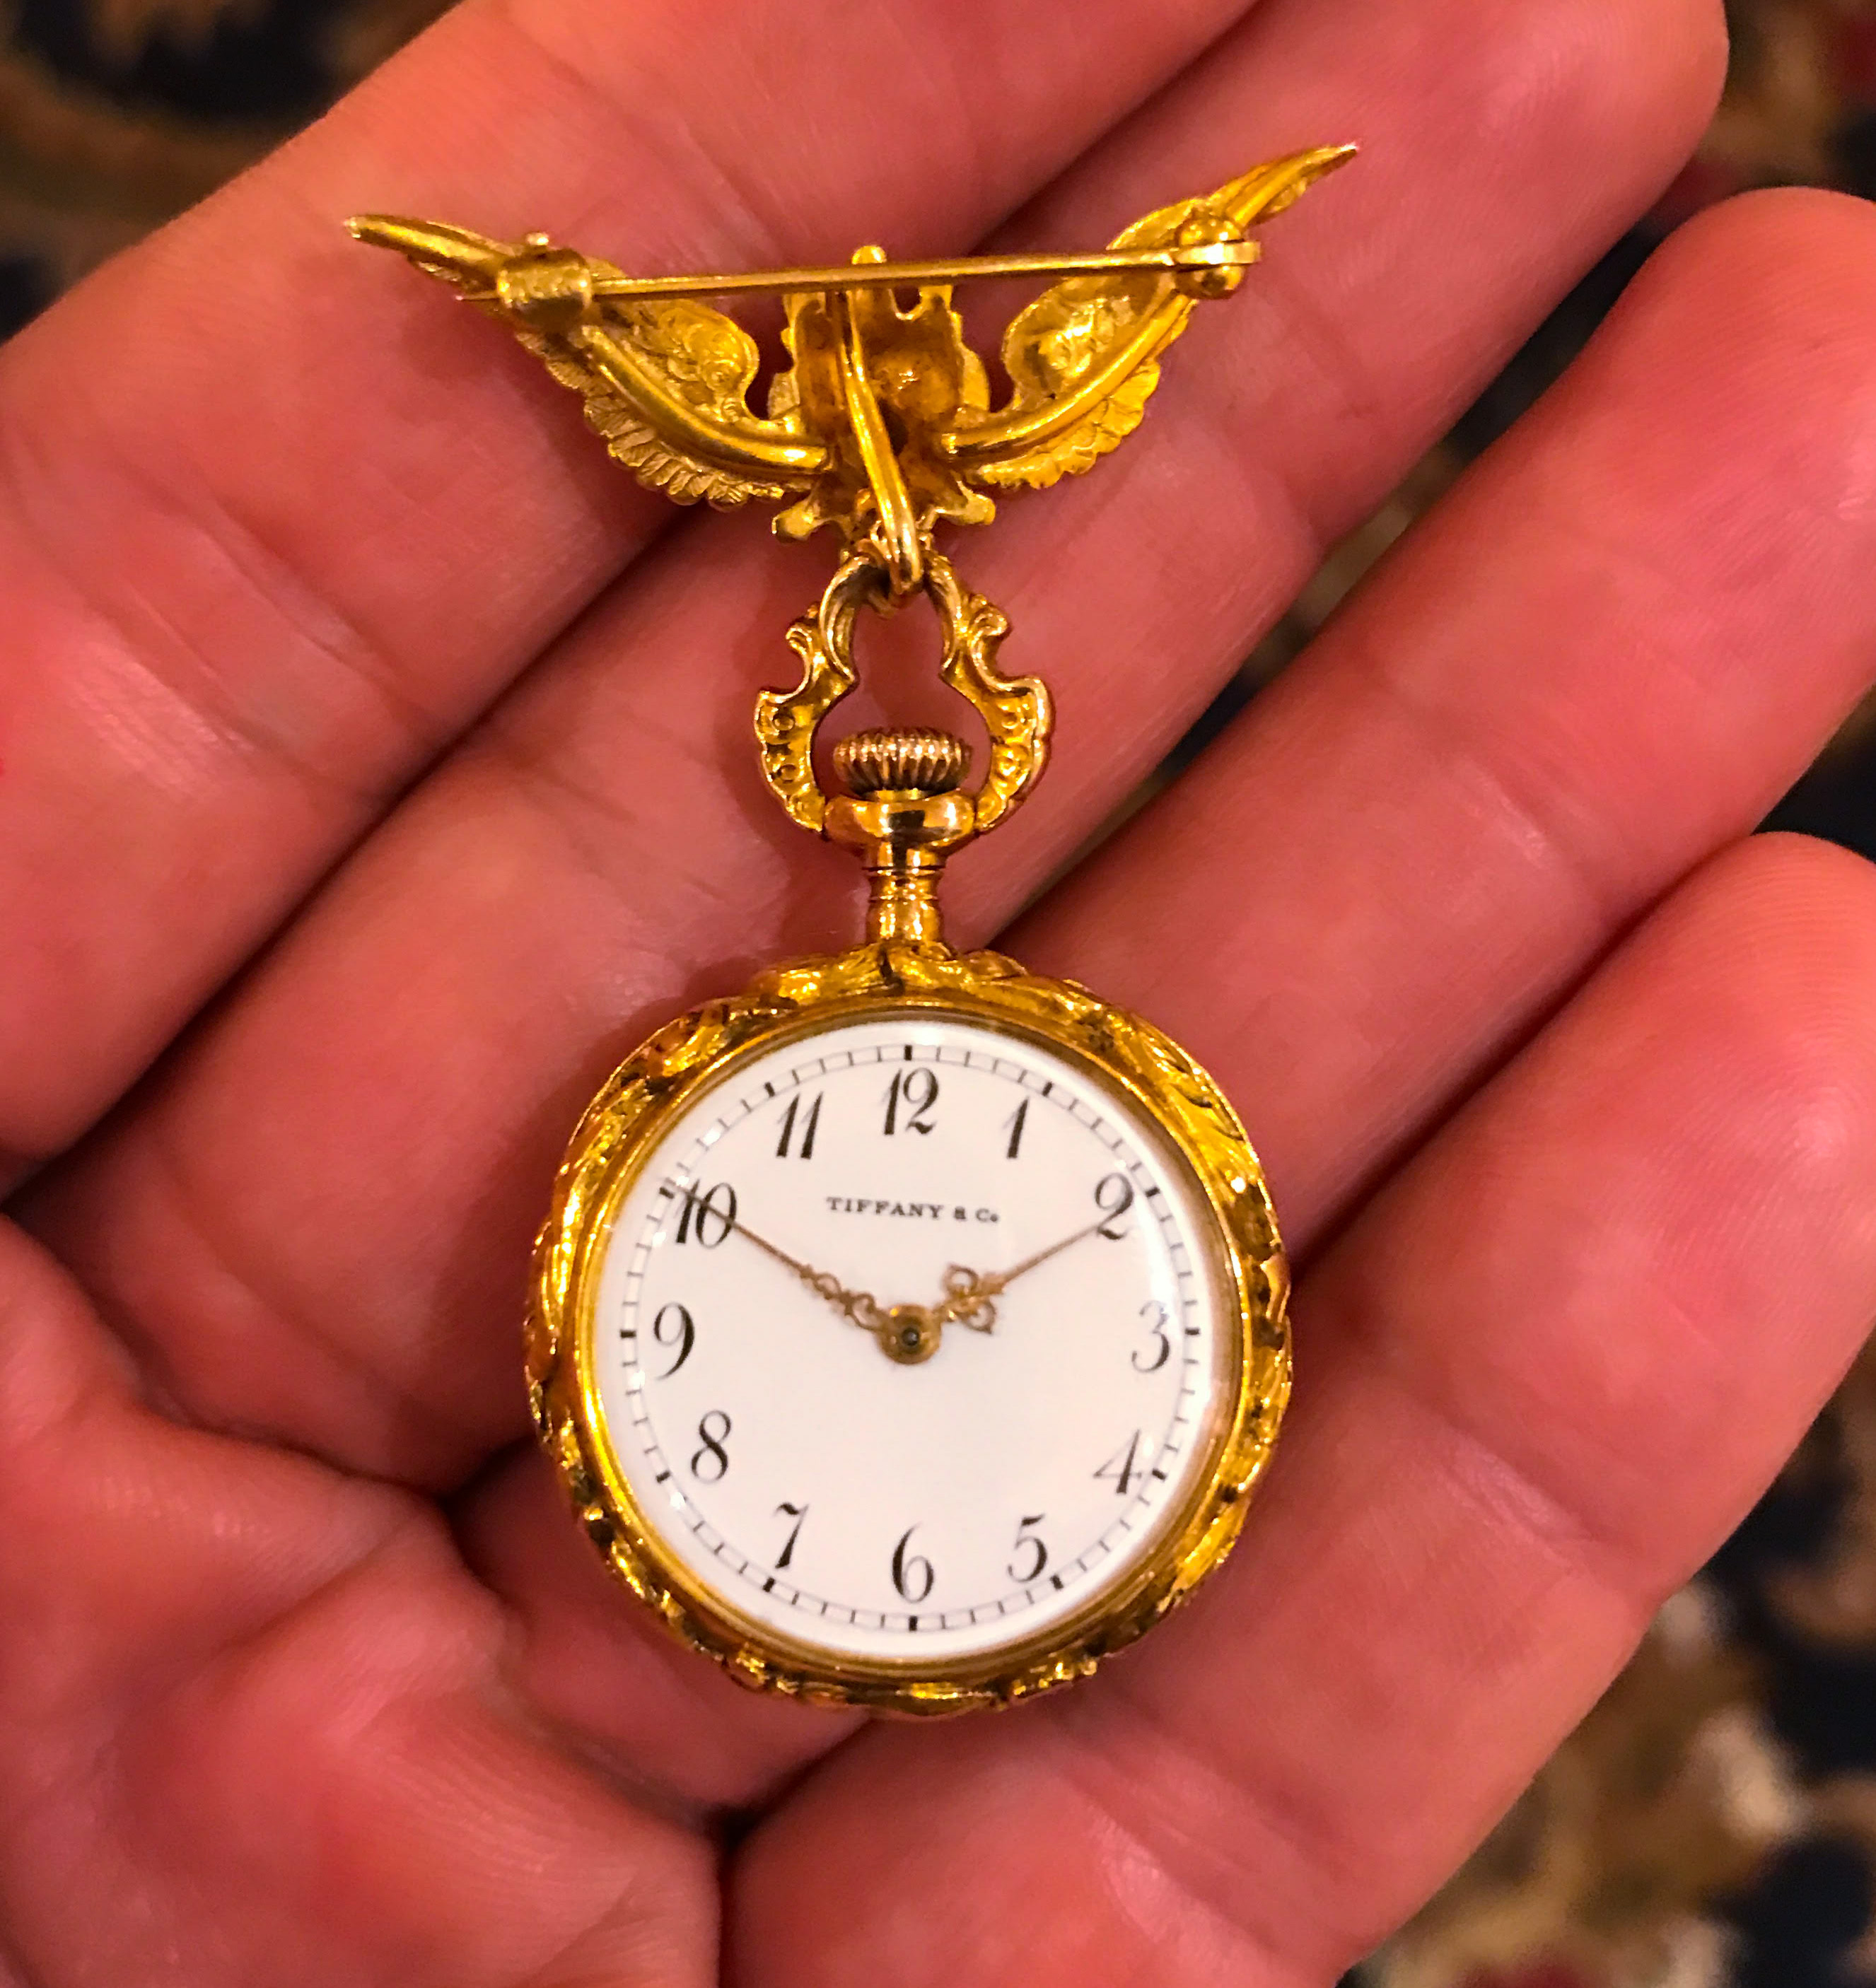 Sell_an_Antique_Tiffany_Lapel_Watch